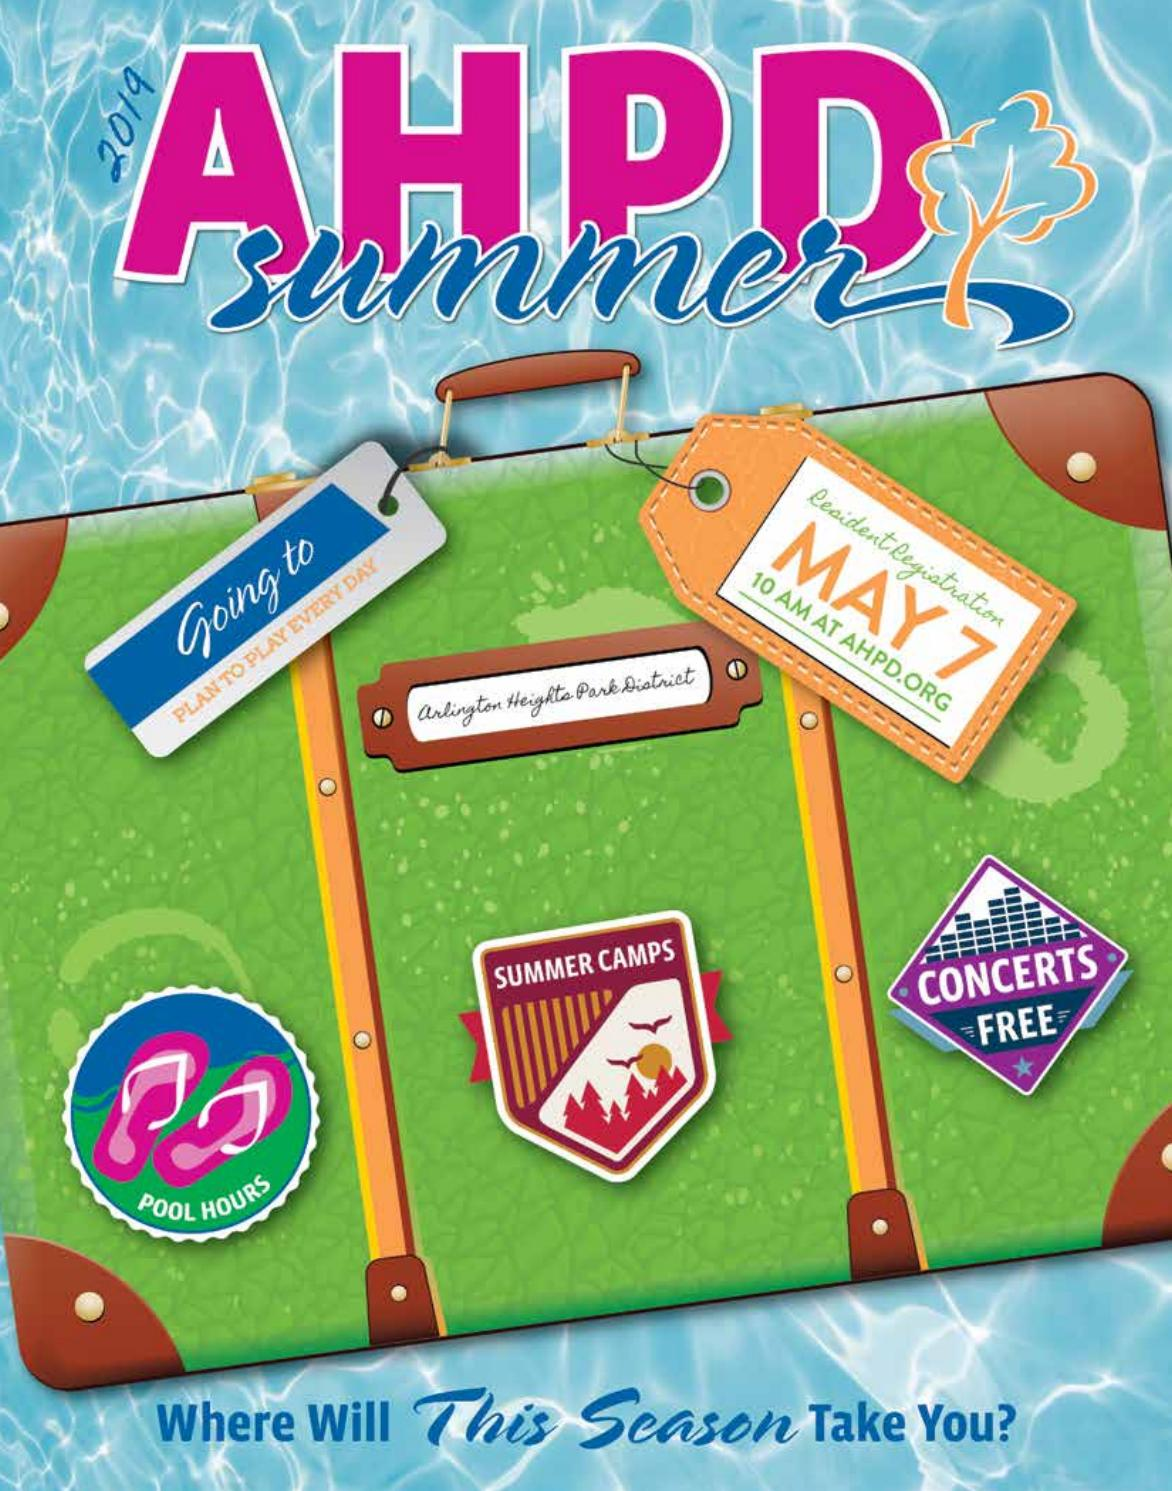 AHPD Summer 2019 Program Guide by Arlington Heights Park District